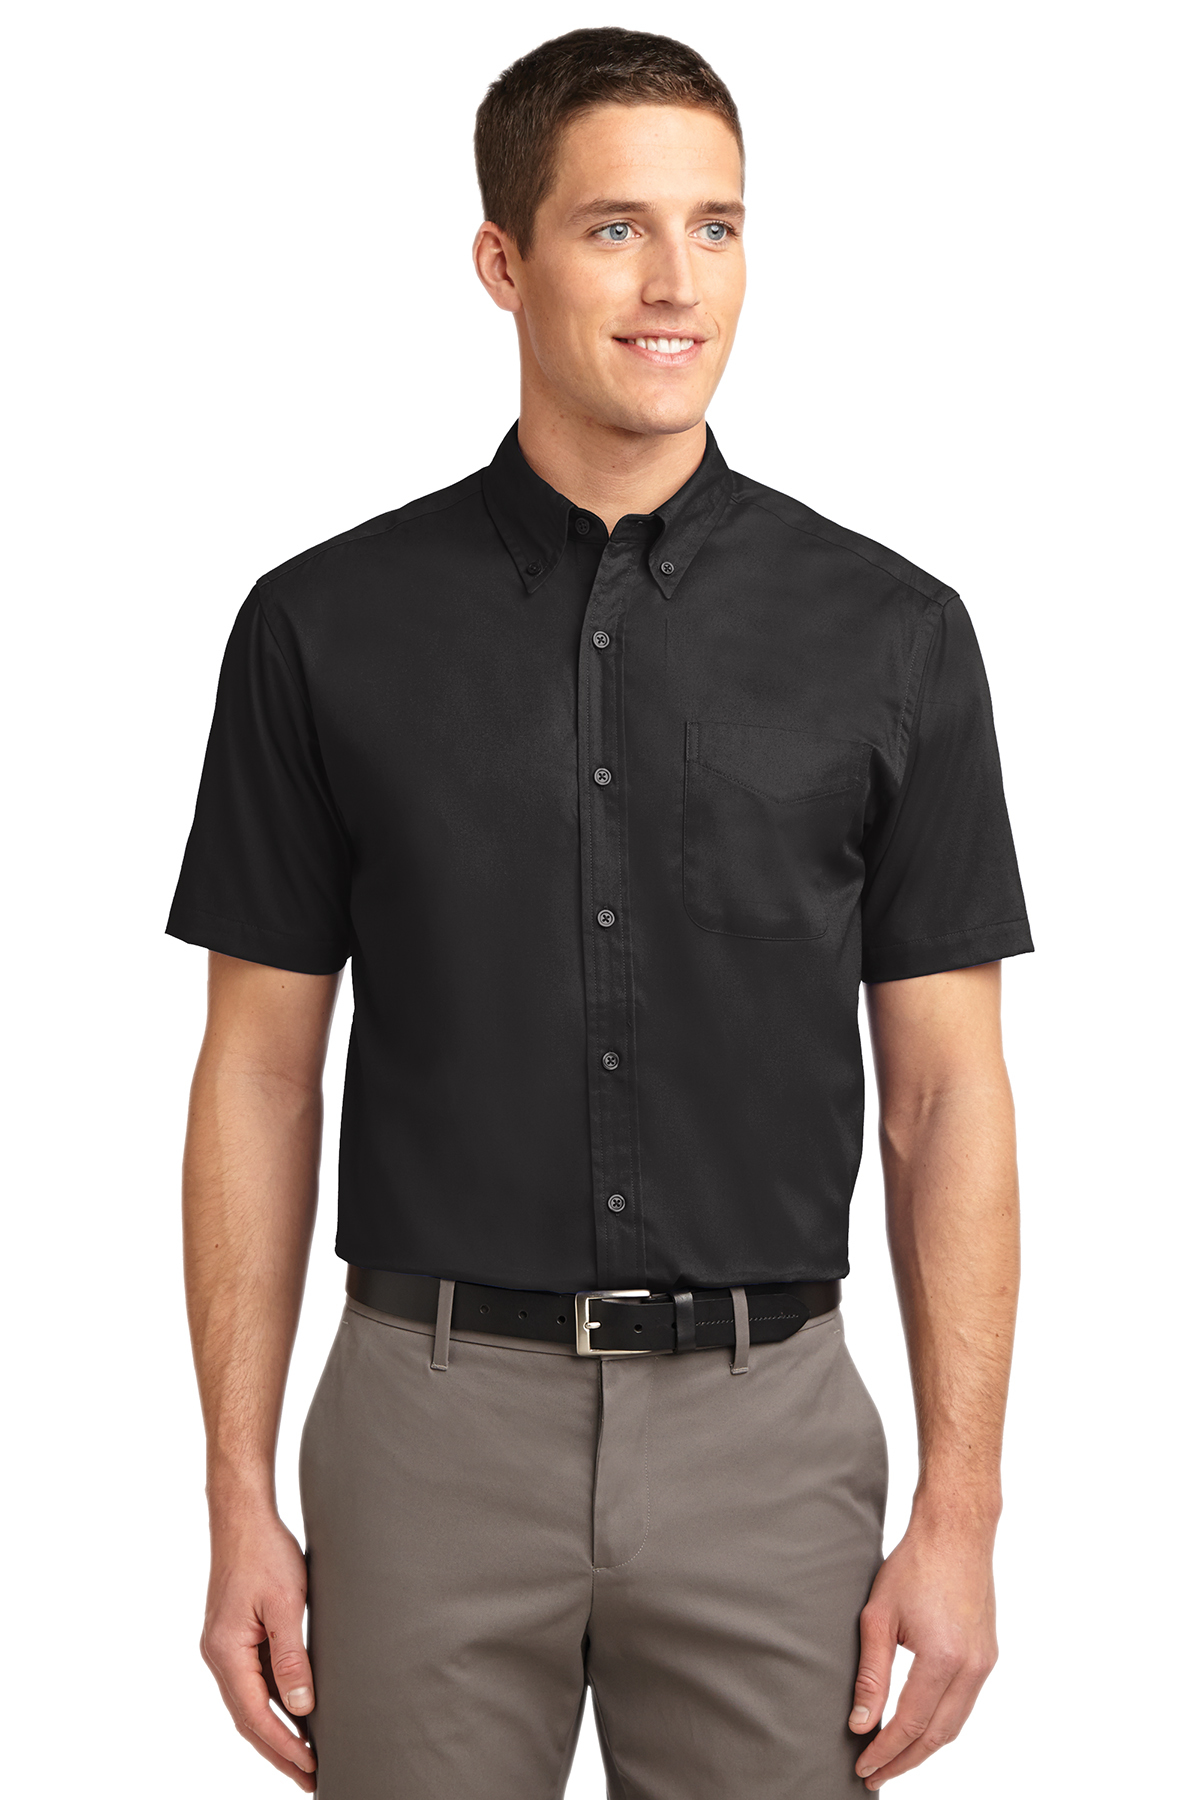 S508-4XL - Port Authority Easy Care-Short Sleeved Shirt